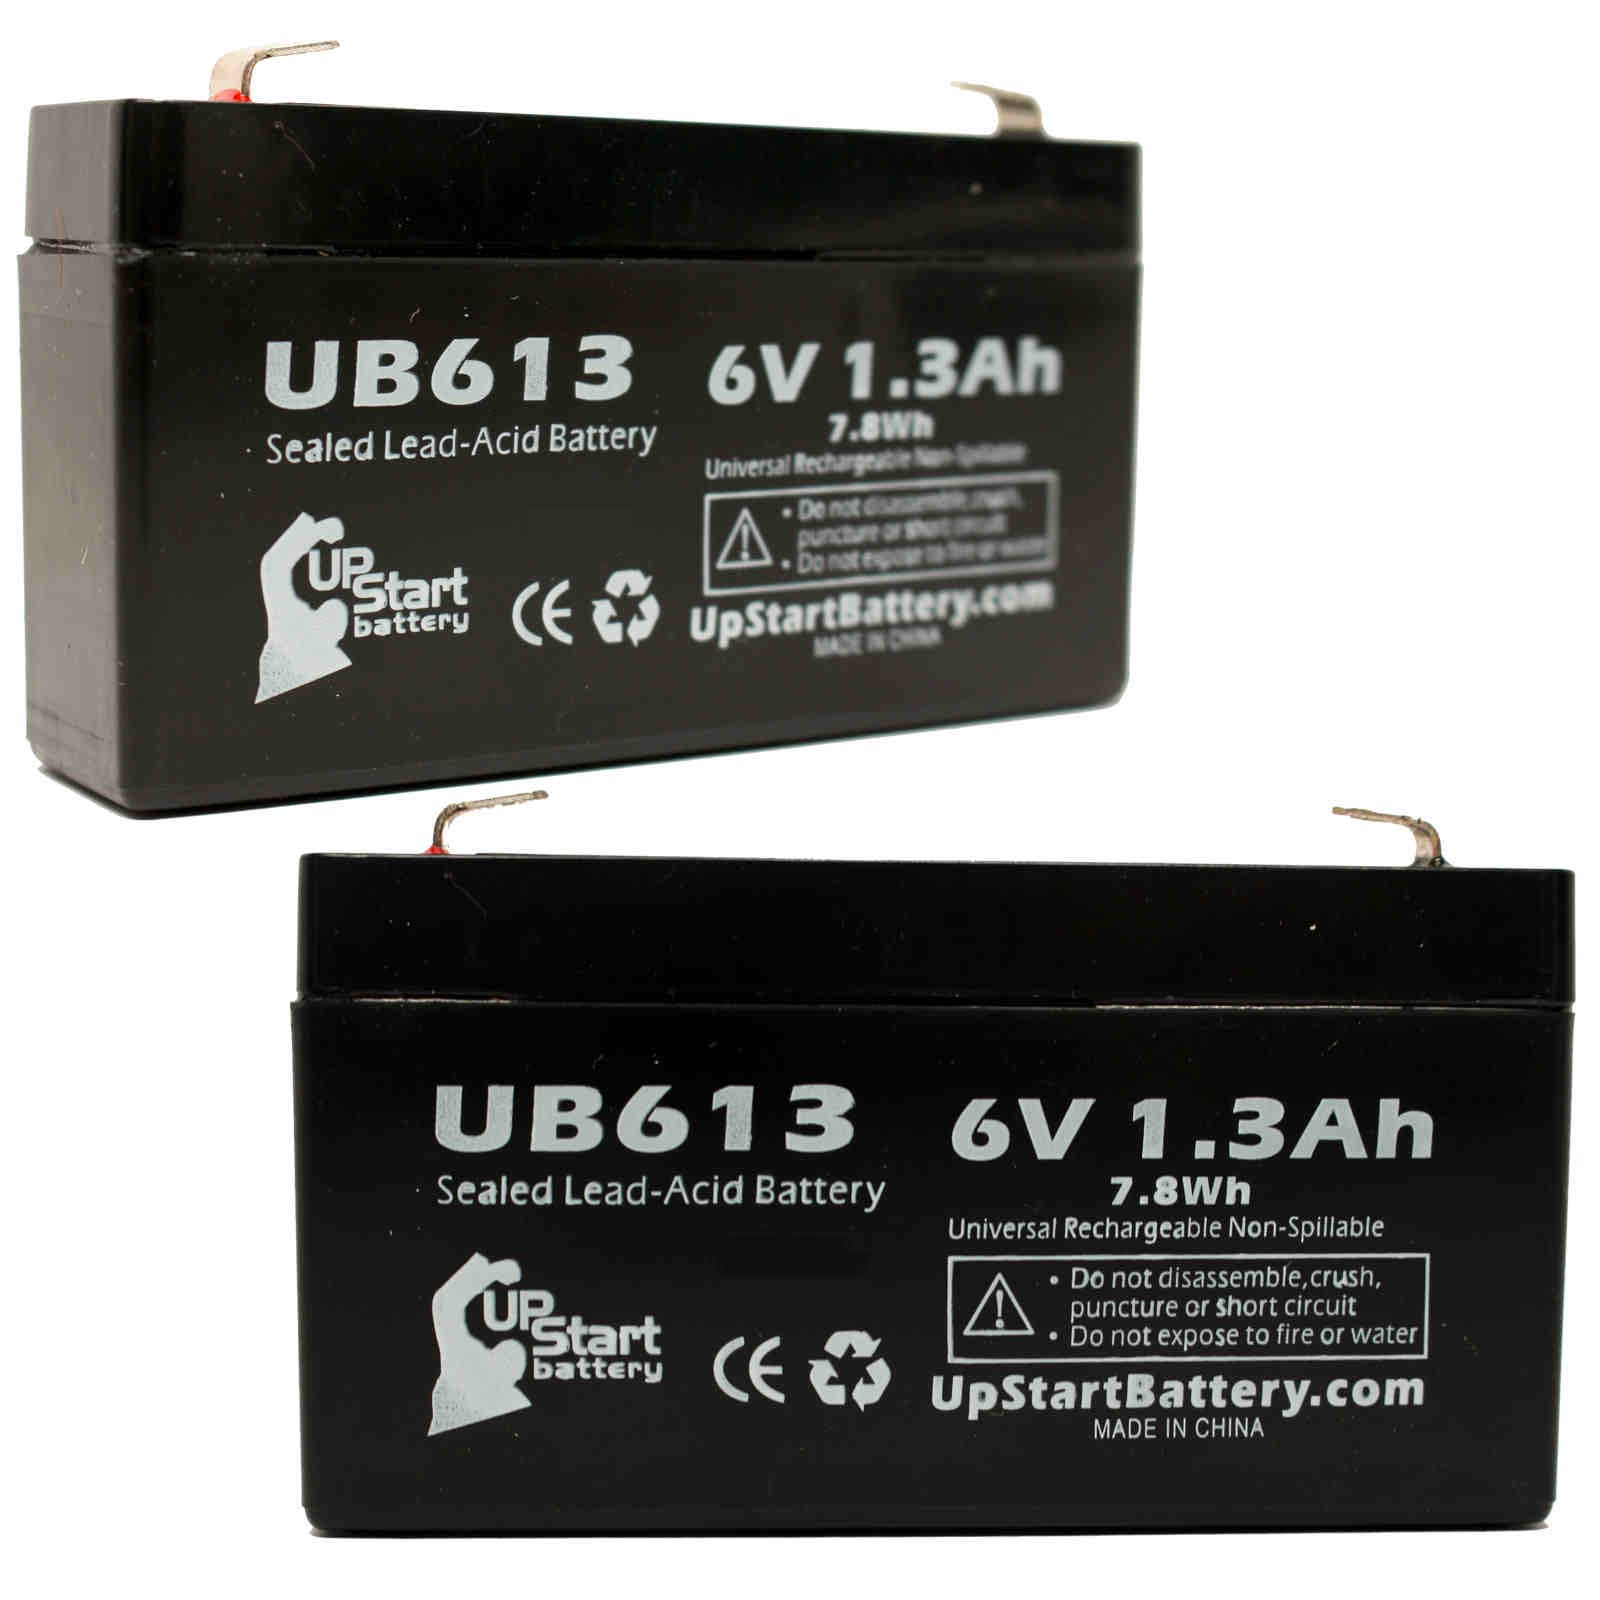 2x Pack - LICHPOWER DJW6-12 Battery Replacement -  UB613 Universal Sealed Lead Acid Battery (6V, 1.3Ah, 1300mAh, F1 Terminal, AGM, SLA) - Includes 4 F1 to F2 Terminal Adapters